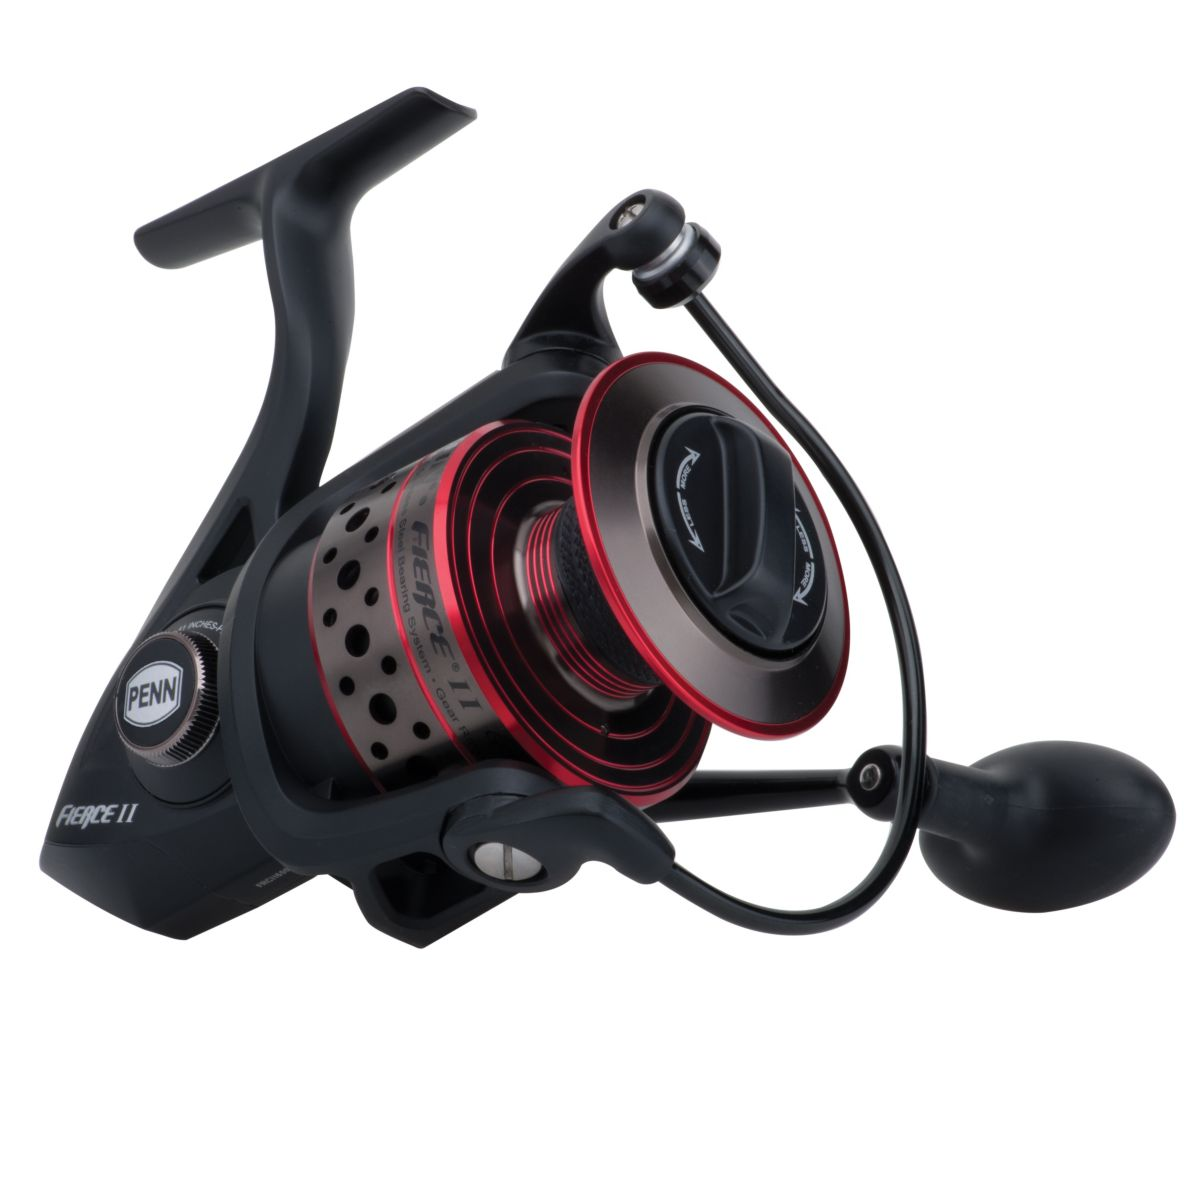 Penn Fierce II FRCII1000 Spinning Reel